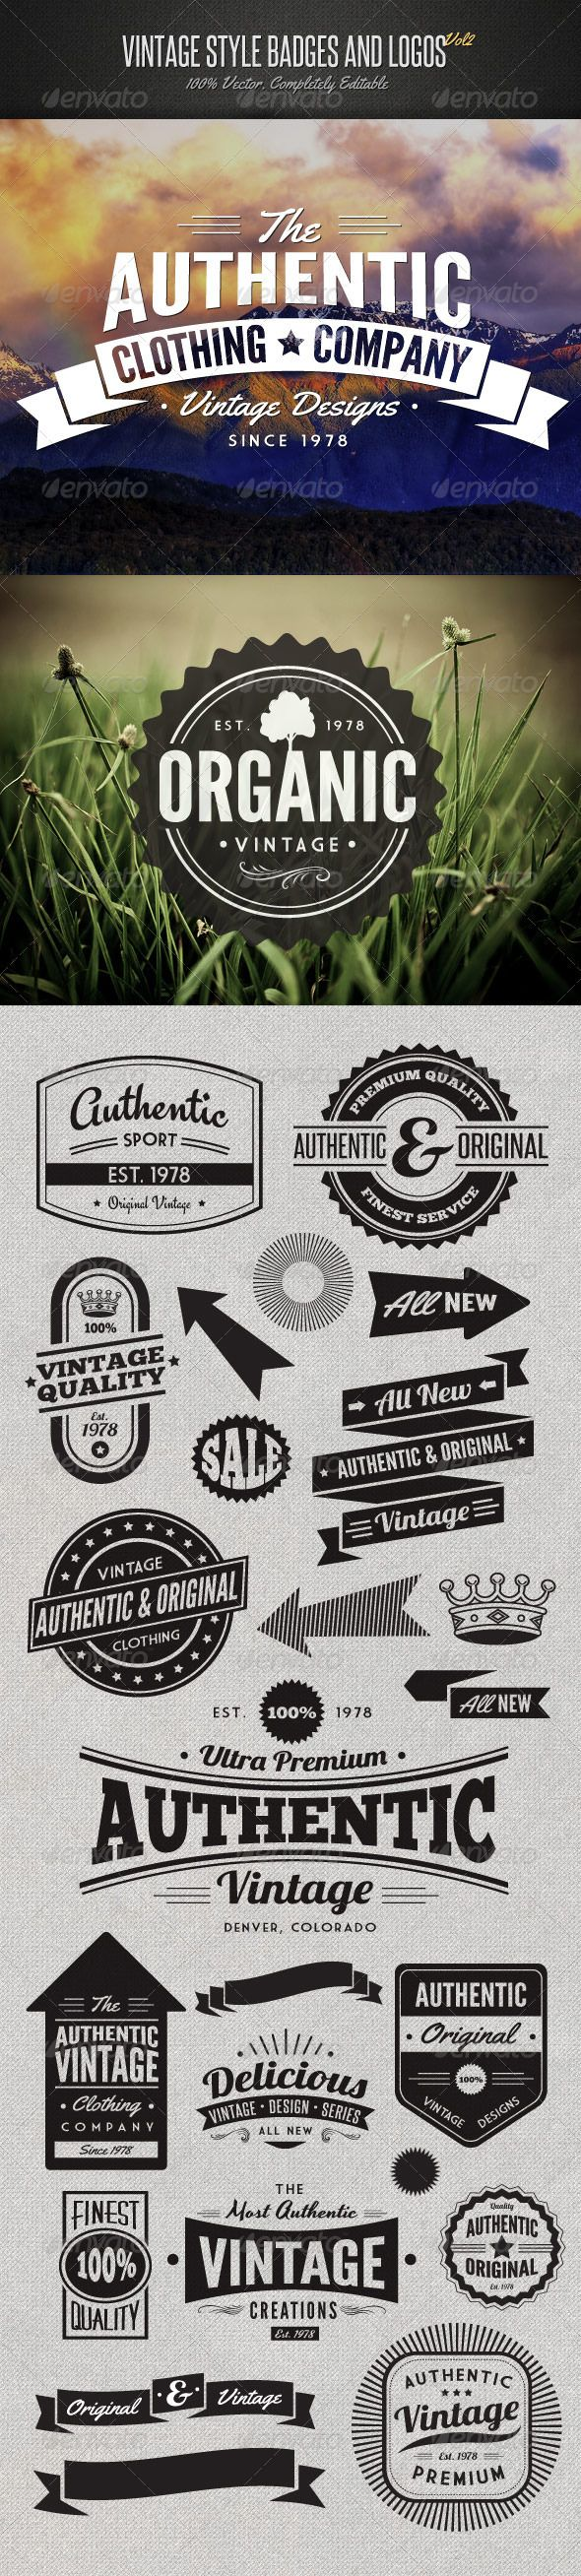 Vintage Style Badges and Logos | corporate branding creative logo personalized identity